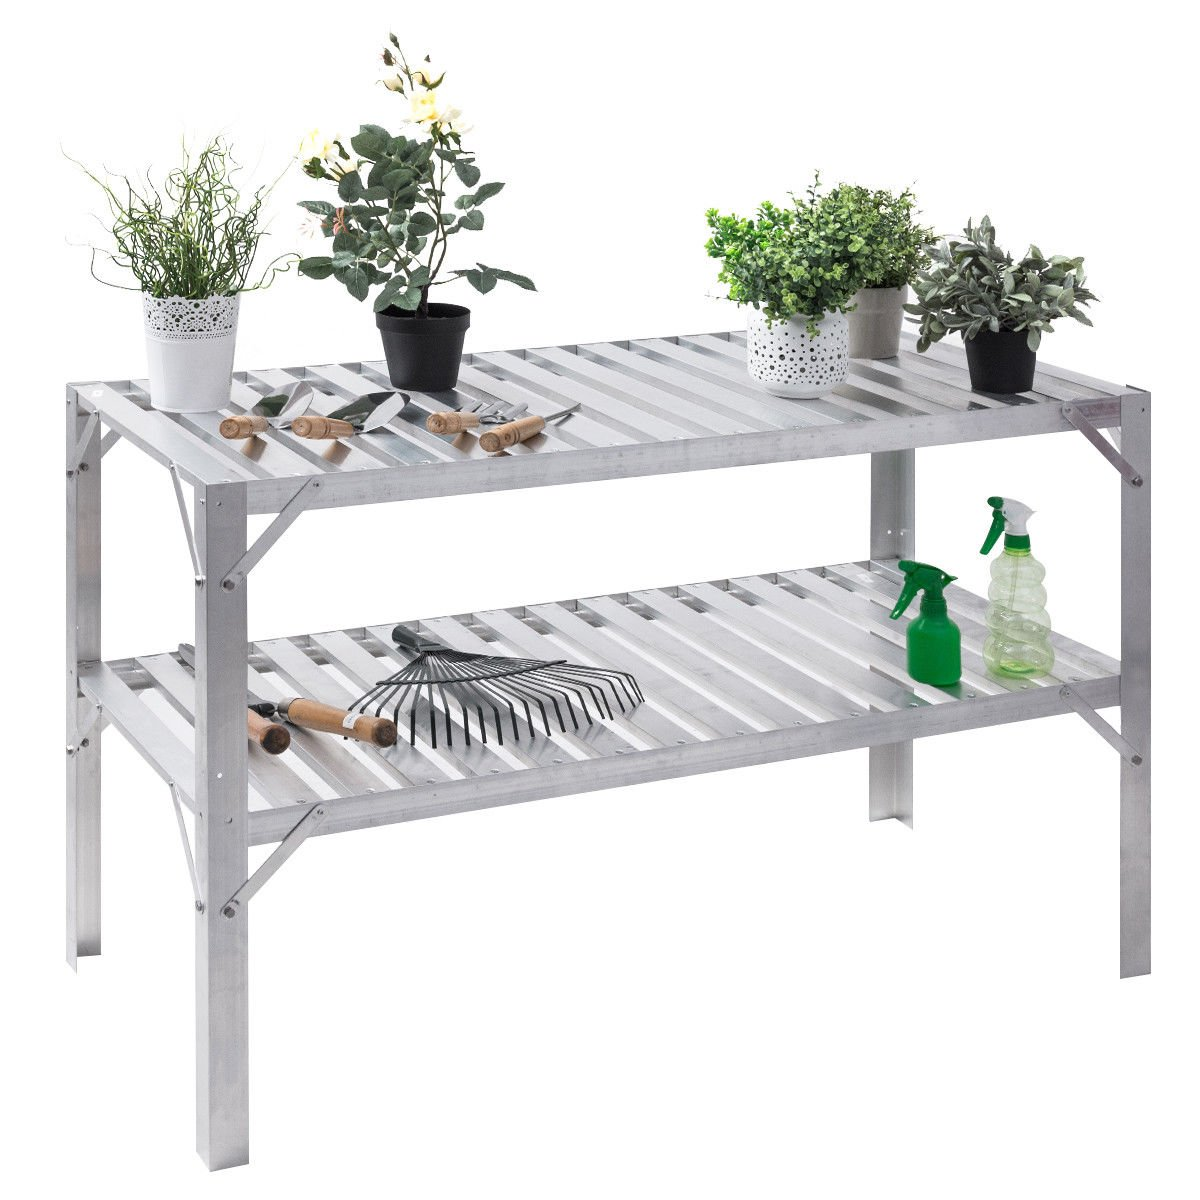 Giantex Aluminum Workbench Oranizer Greenhouse Prepare Work Potting Table Storage Garage Shelves, Silver by Giantex (Image #1)